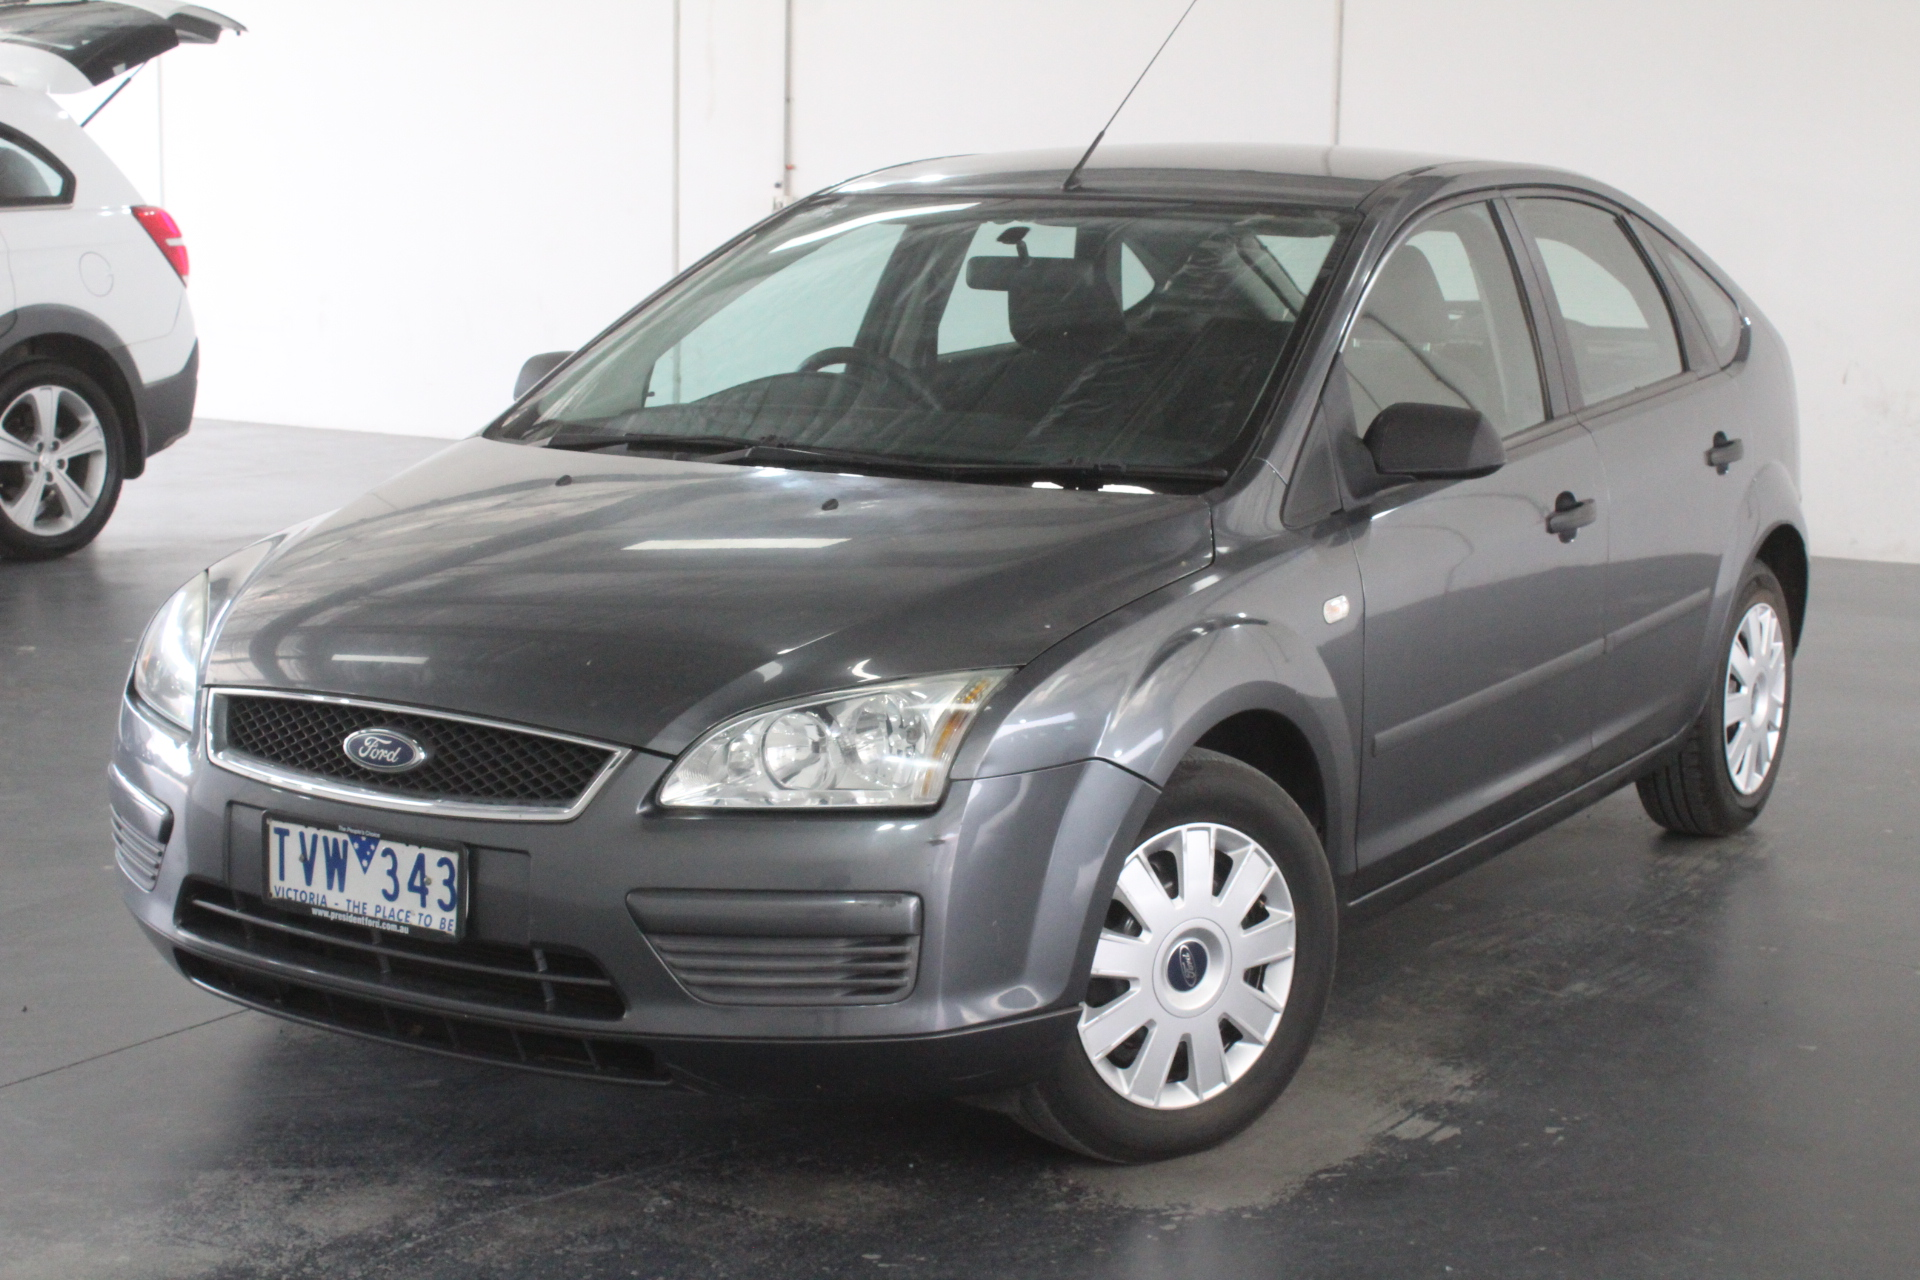 2005 Ford Focus CL LS Automatic Hatchback